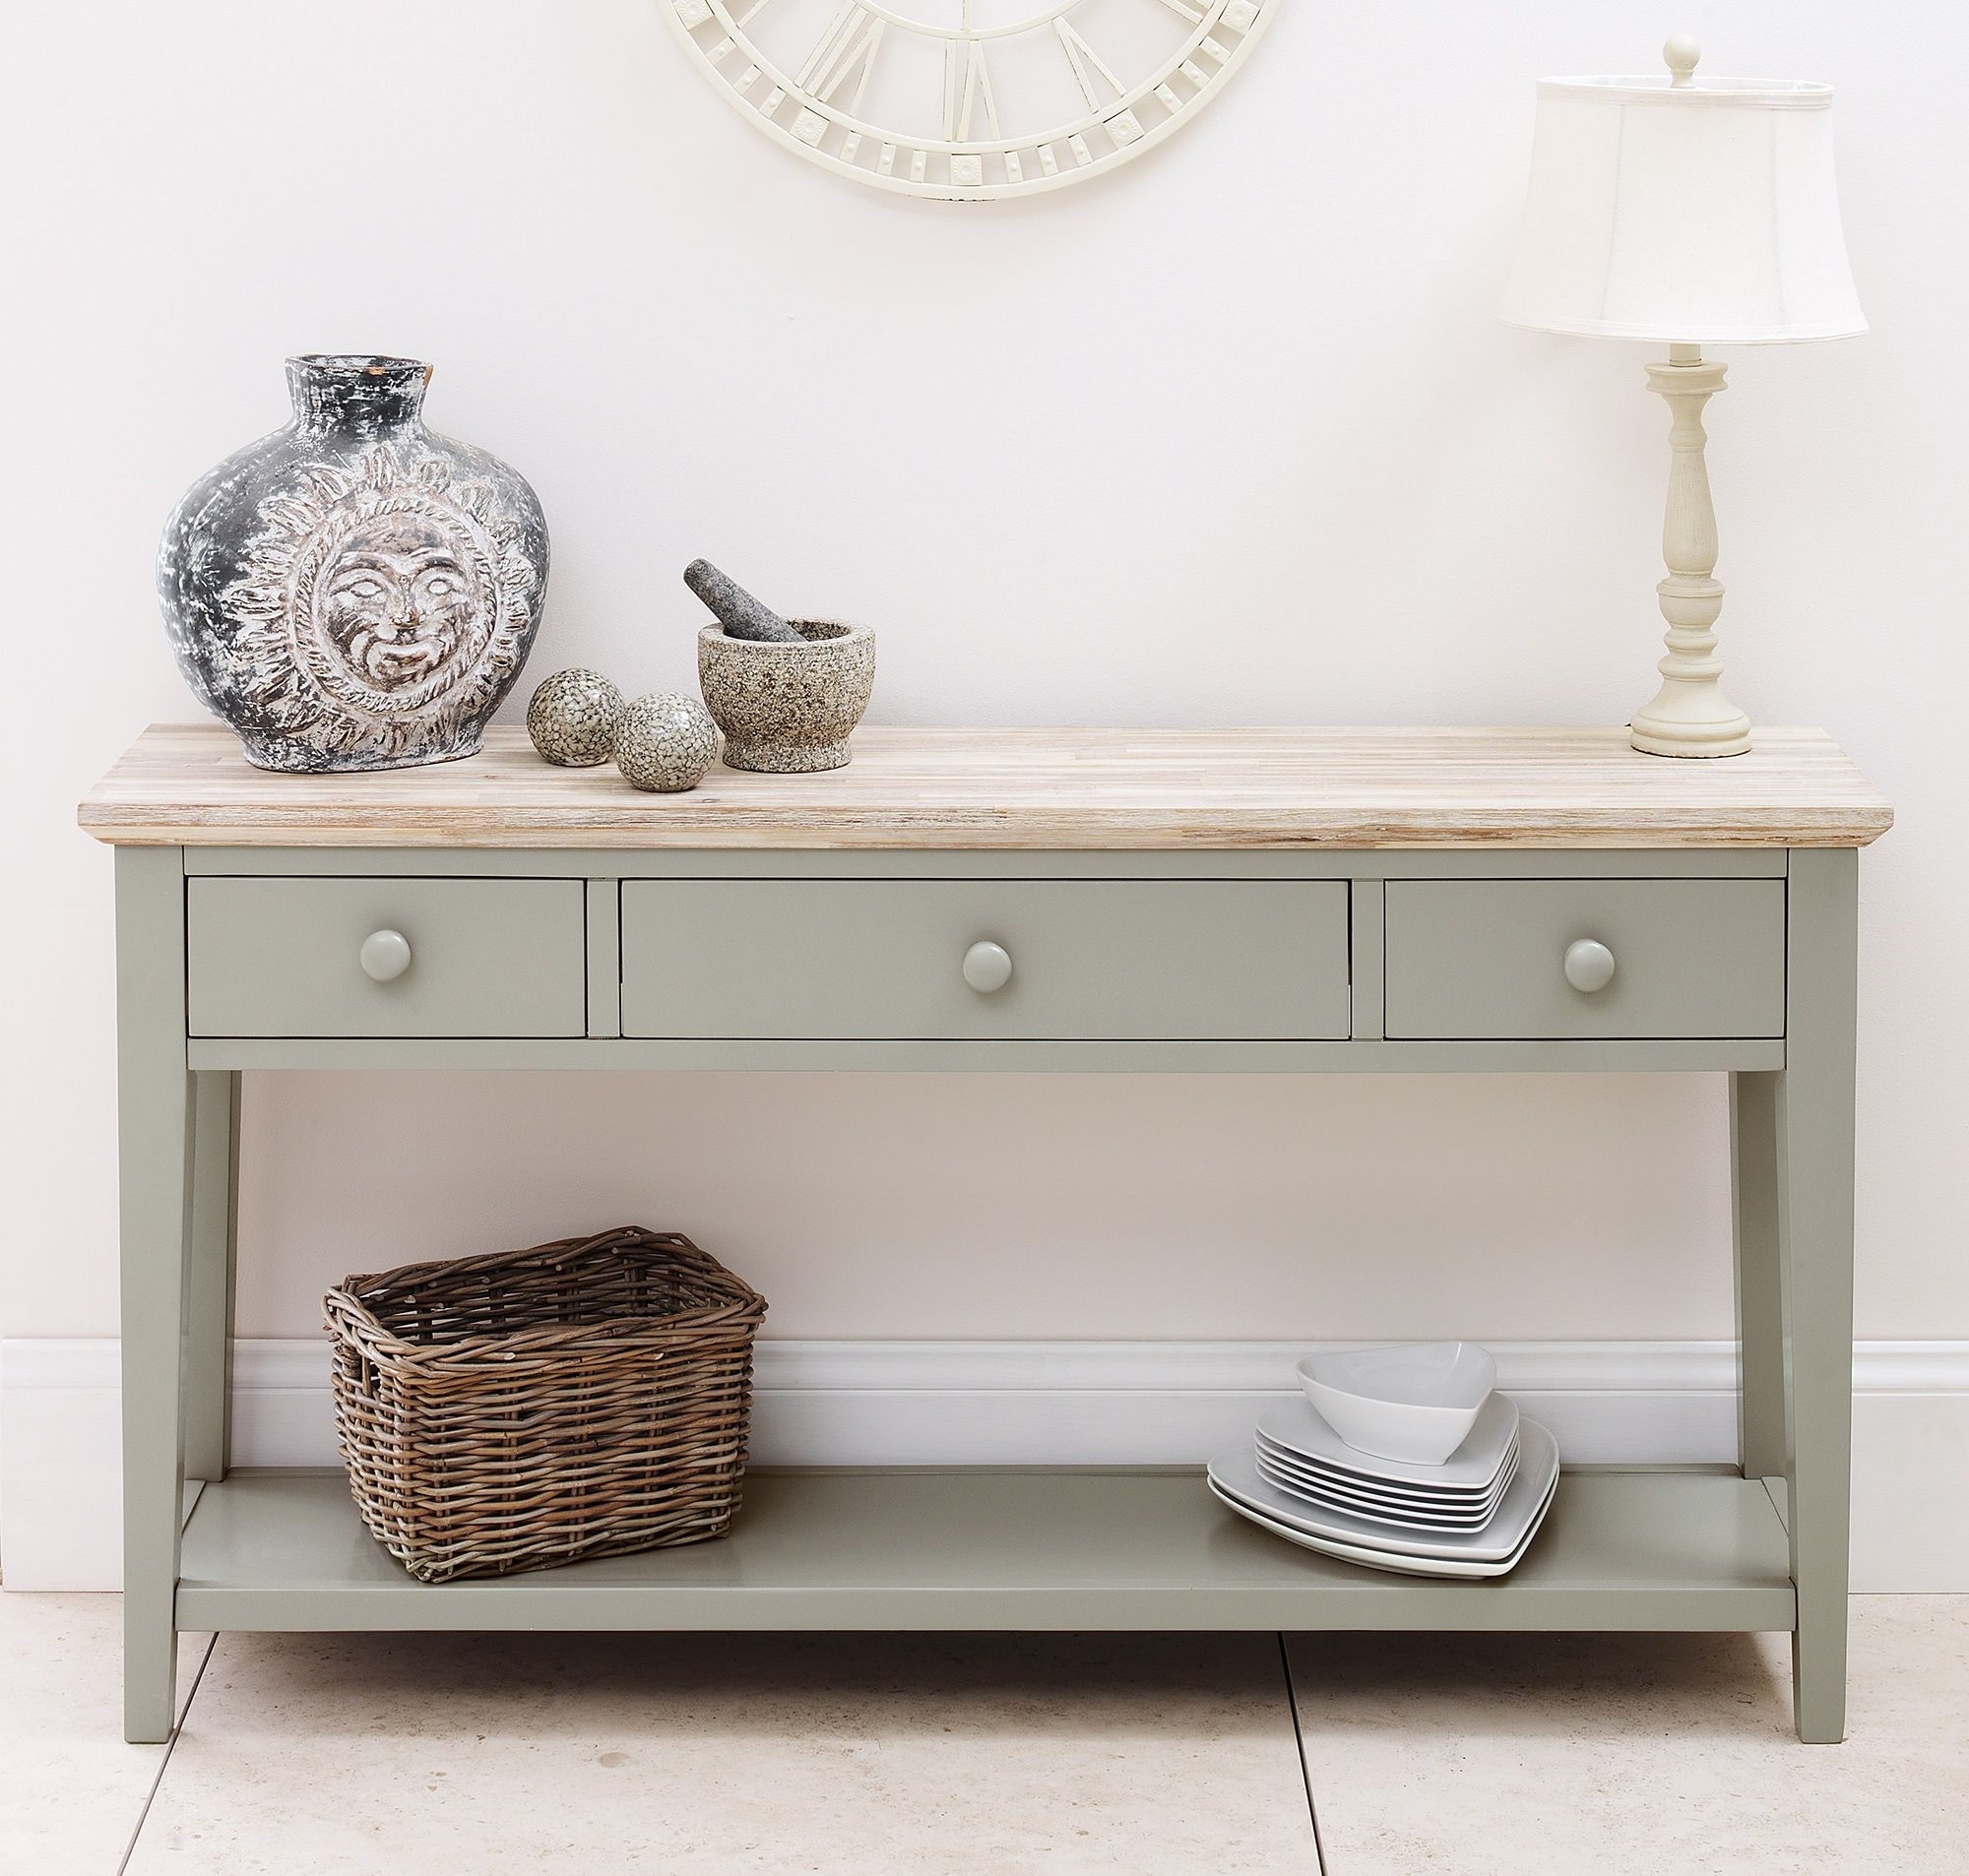 Country style painted console table tutti decor ltd 350 country style painted console table tutti decor ltd 350 geotapseo Gallery